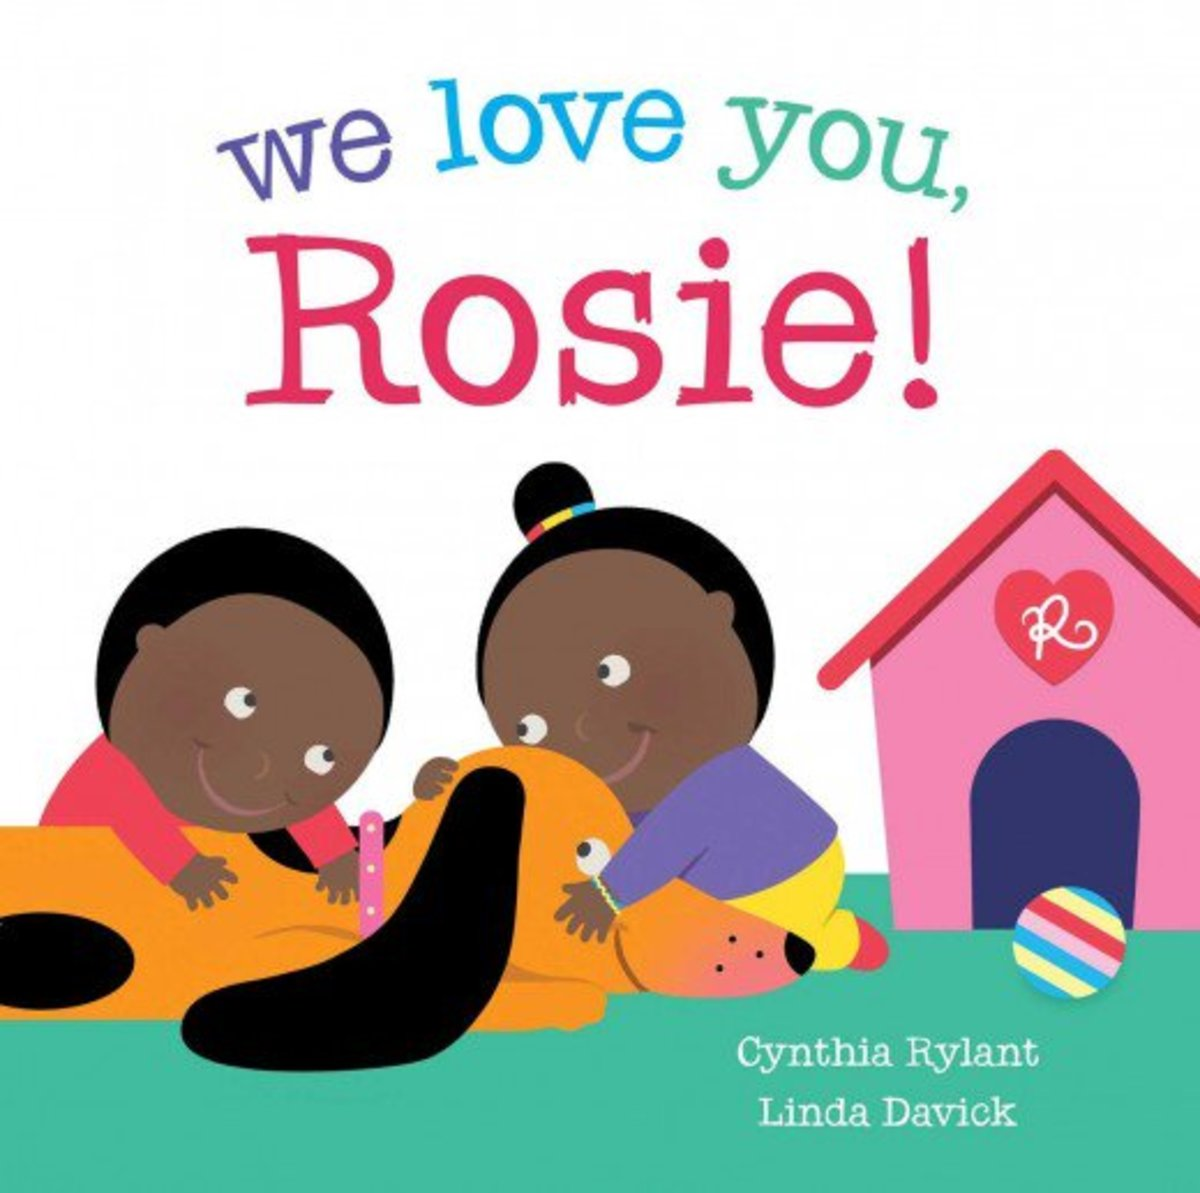 We Love You, Rosie by Cynthia Rylant